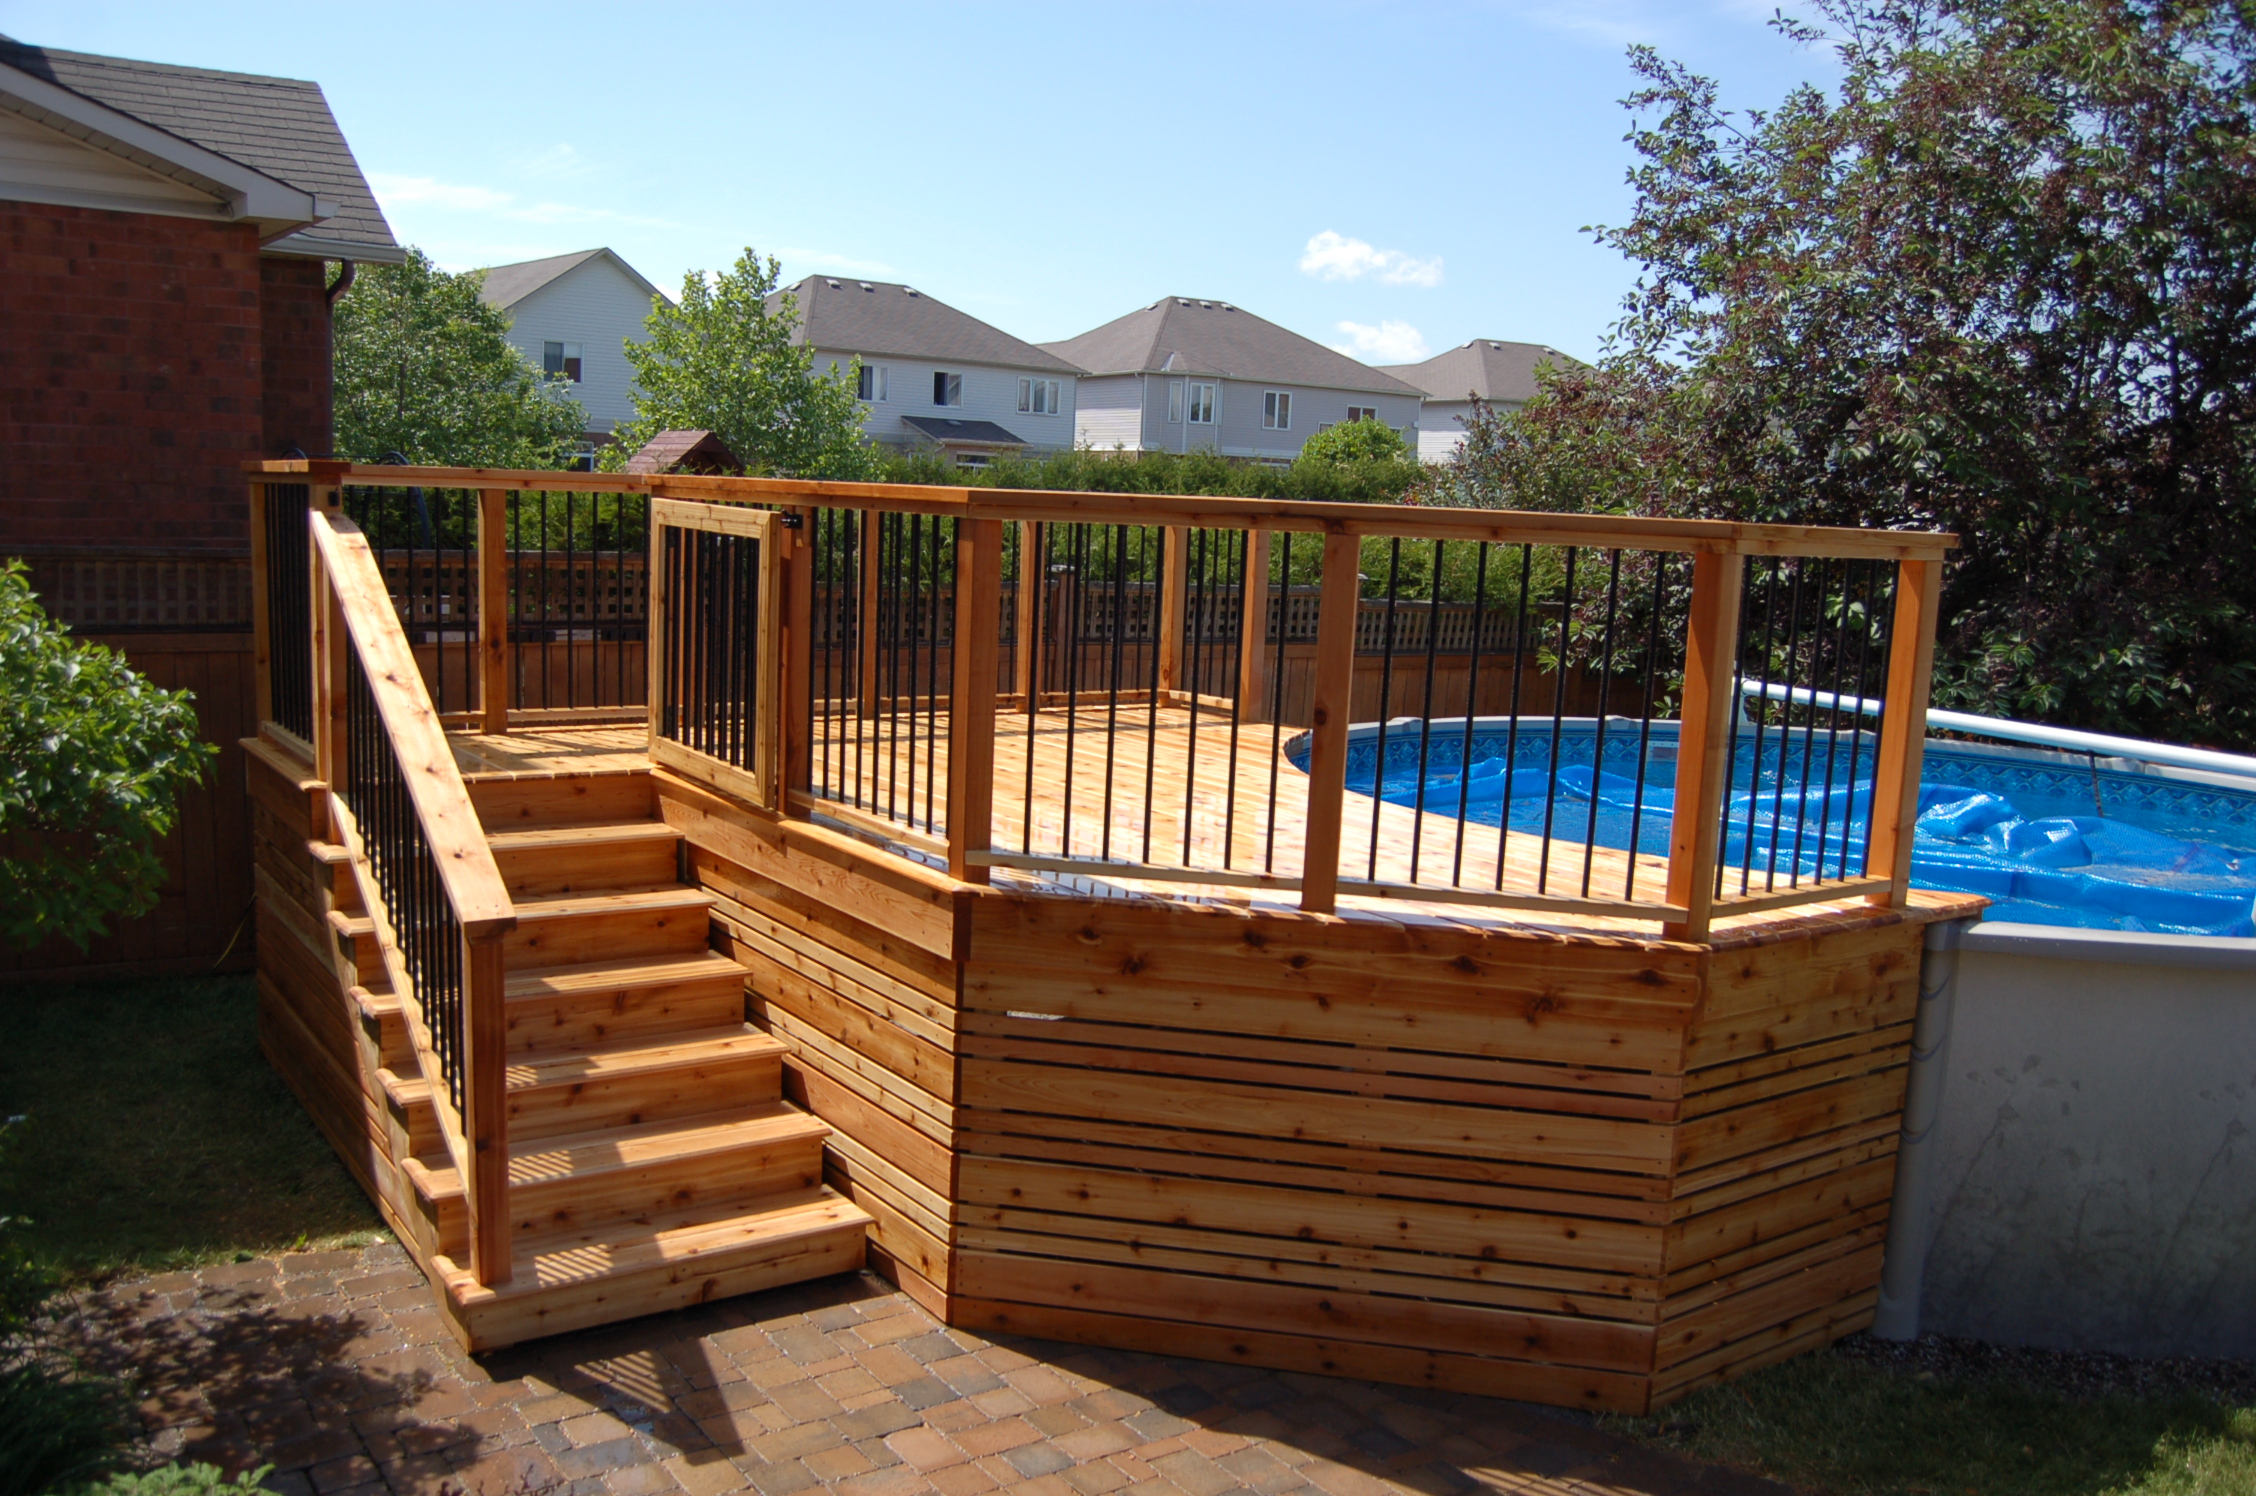 Pool Deck, Deckorator Rail & Gate